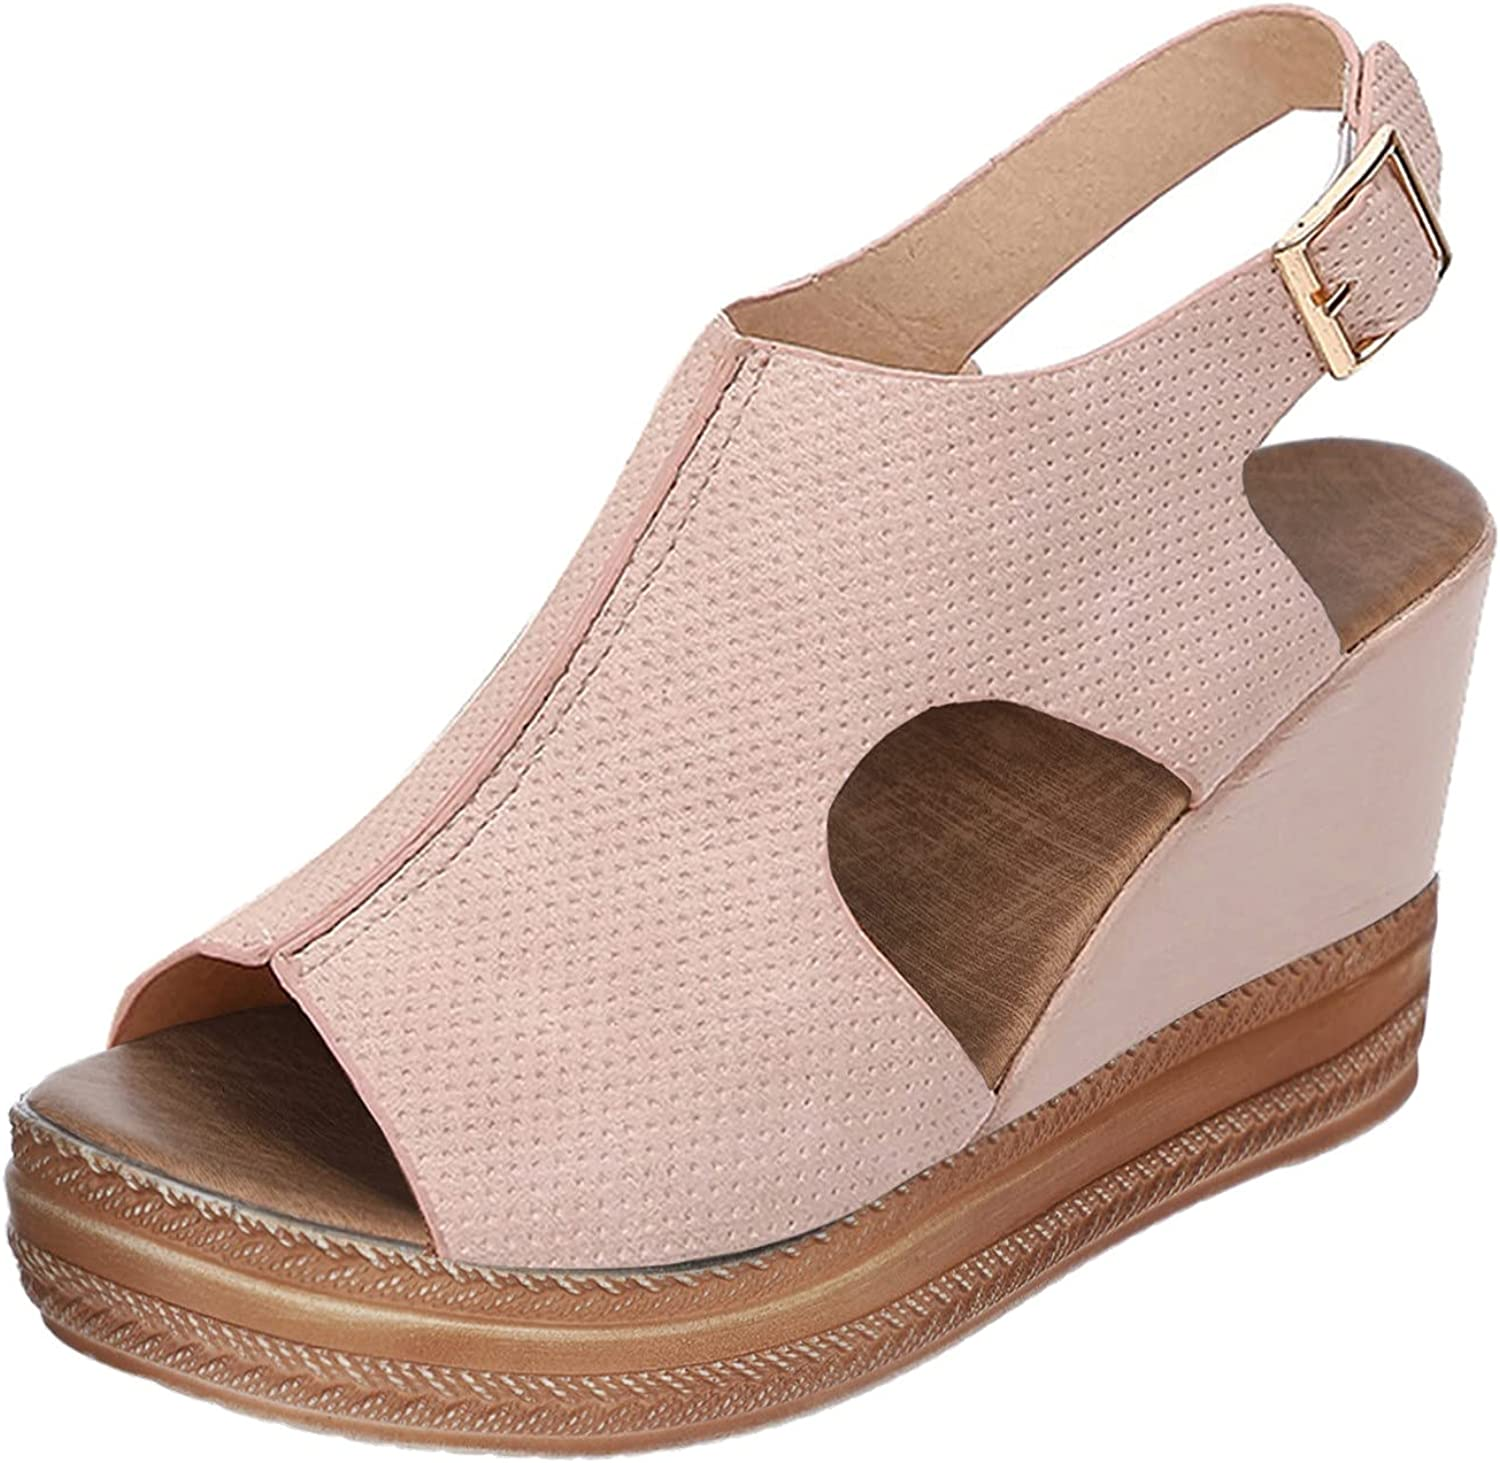 ZiSUGP Women's Special sale item Ladies Award Solid Wedges Casual Roman Buckle Strap Sho